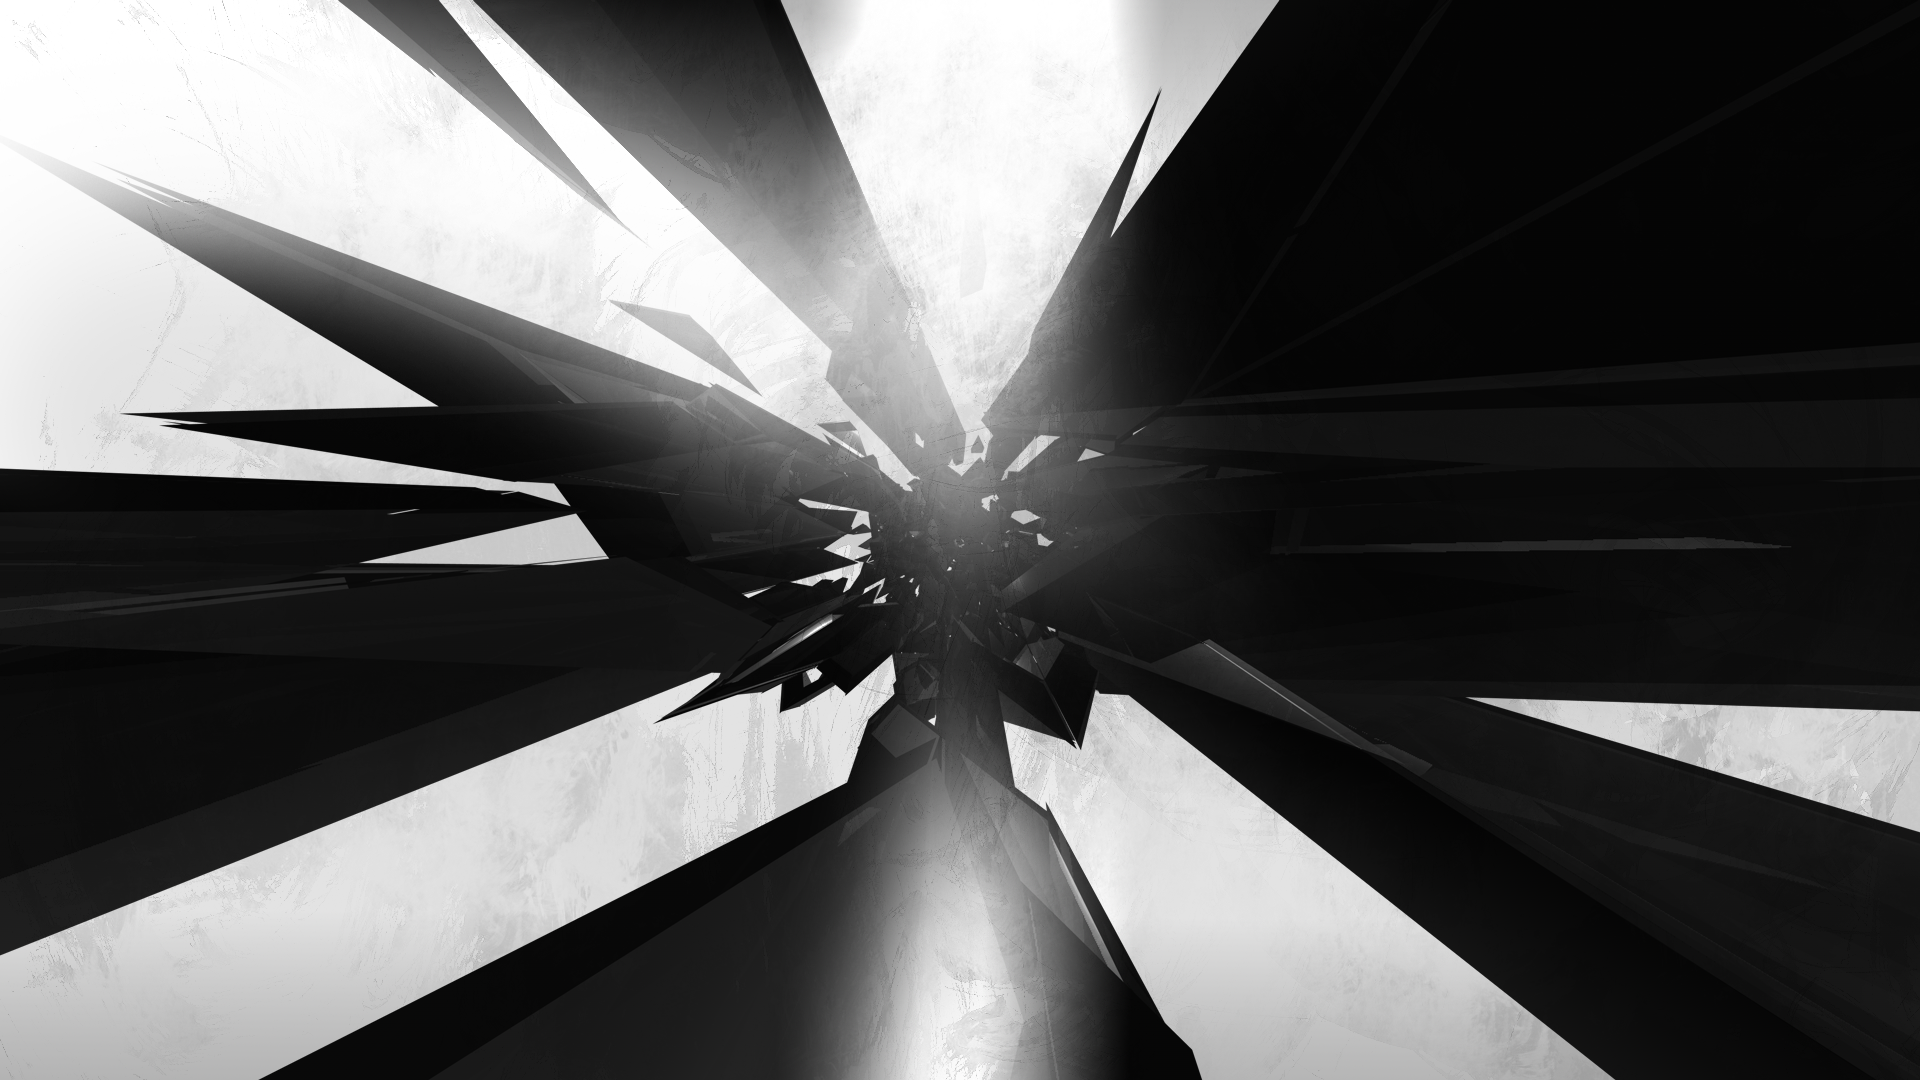 Another Black And White Abstract Wallpaper by TomSimo 1920x1080